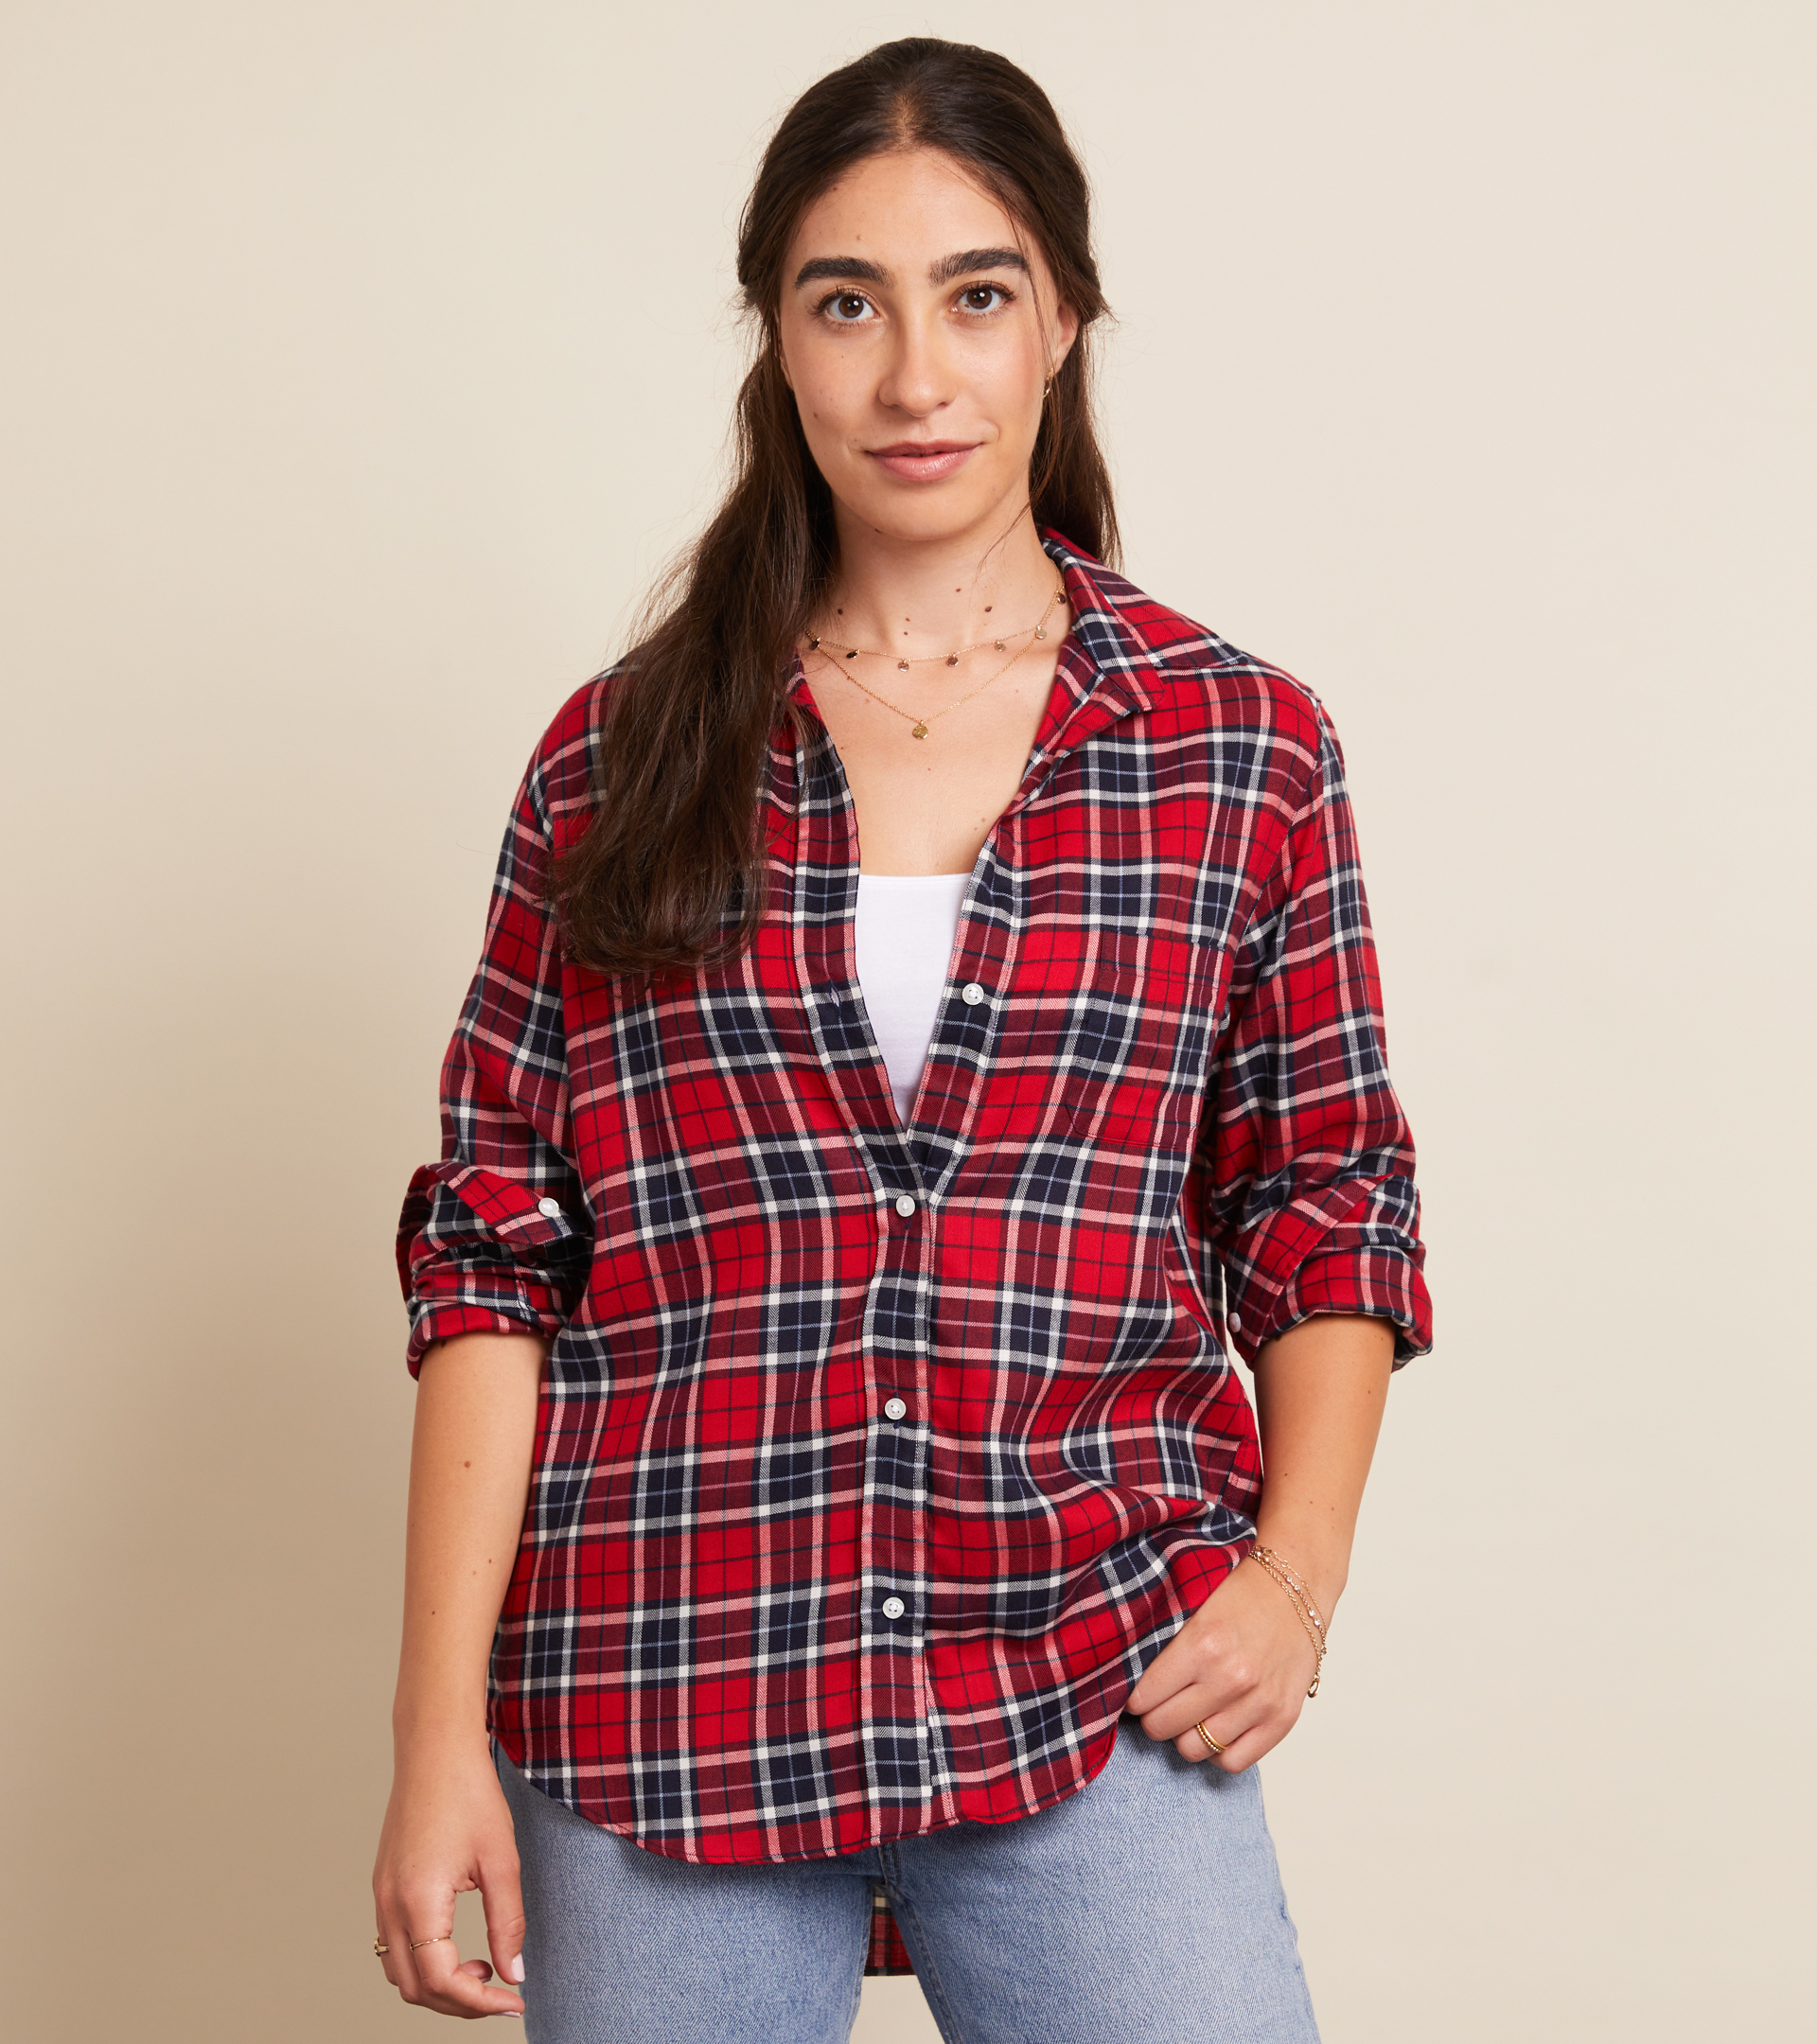 Image of The Hero Button-Up Shirt Red, Navy, and White Plaid, Liquid Flannel